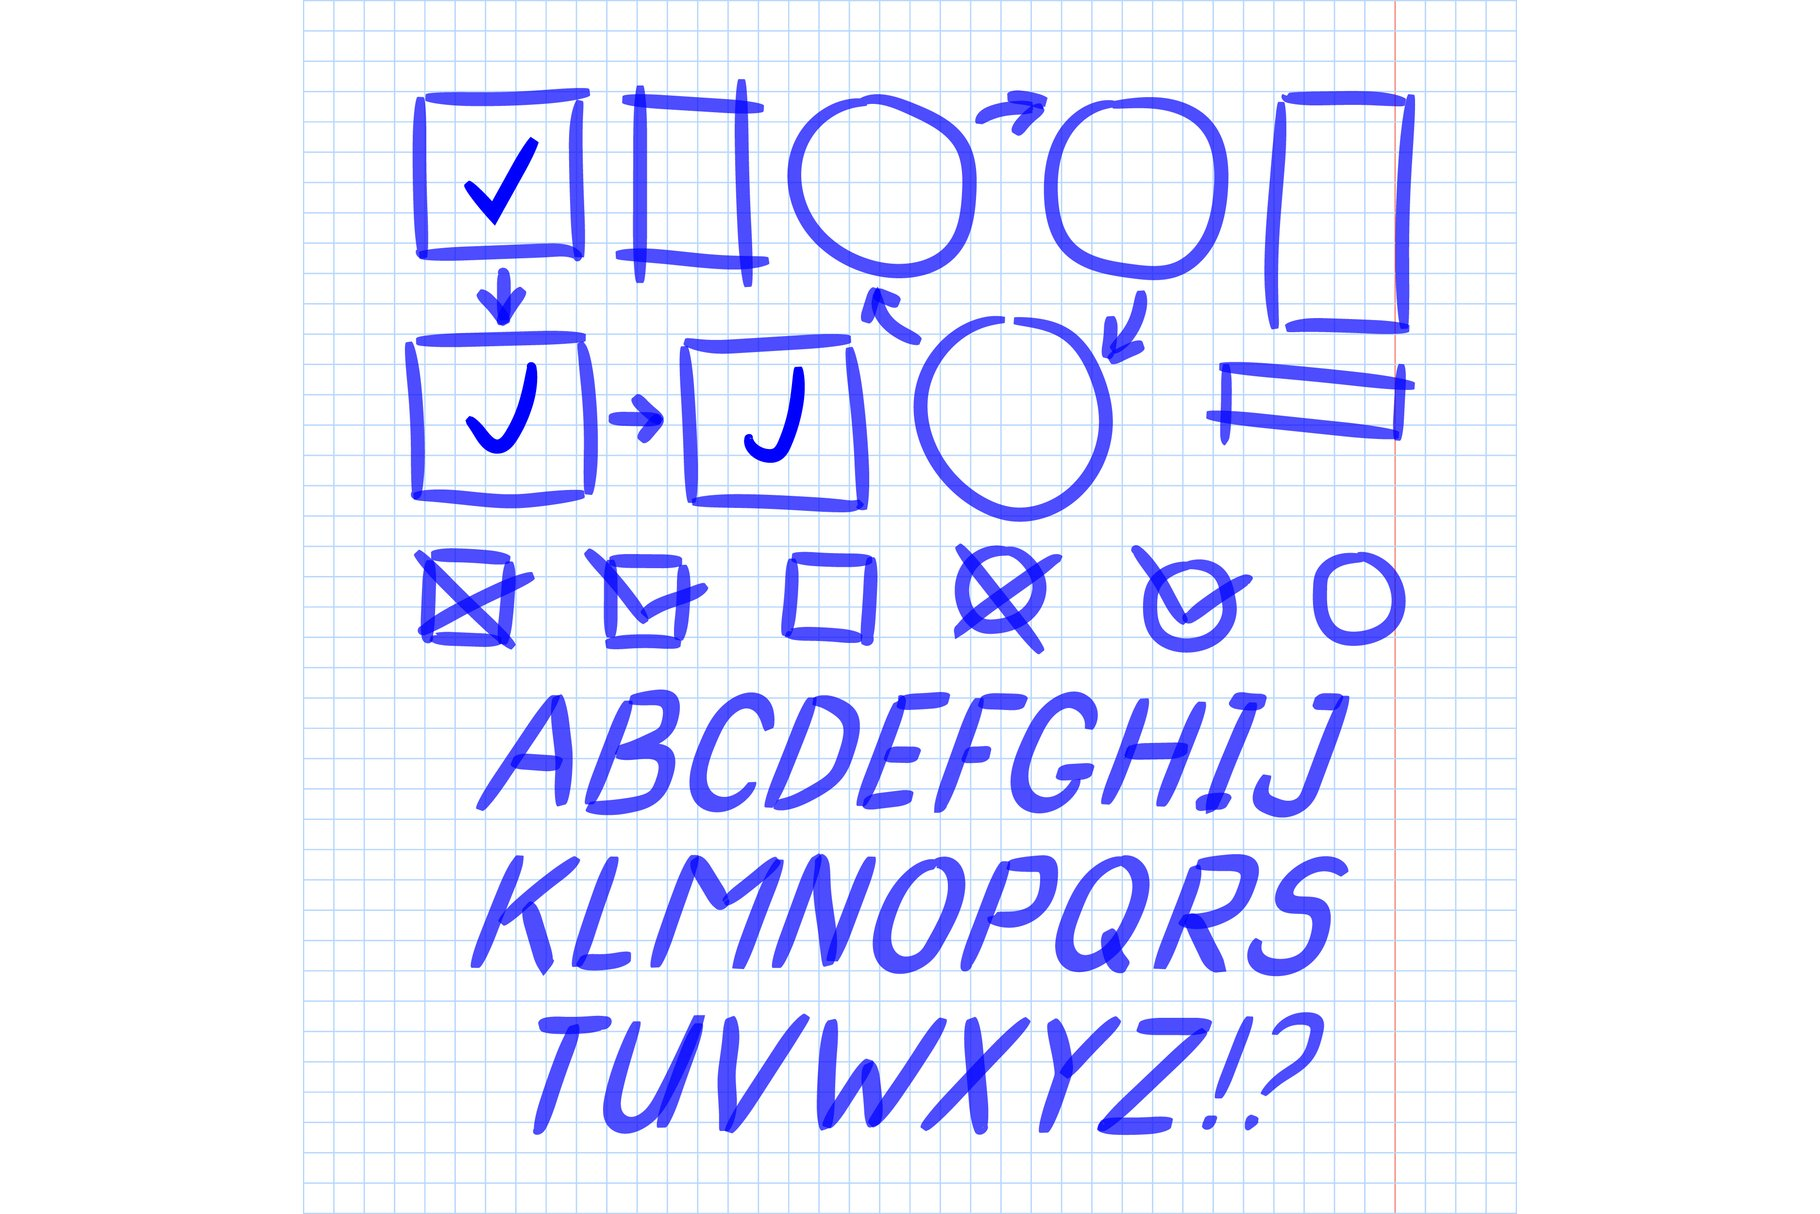 Marker Hand Written Doodle Letters And Symbols Vector example image 1